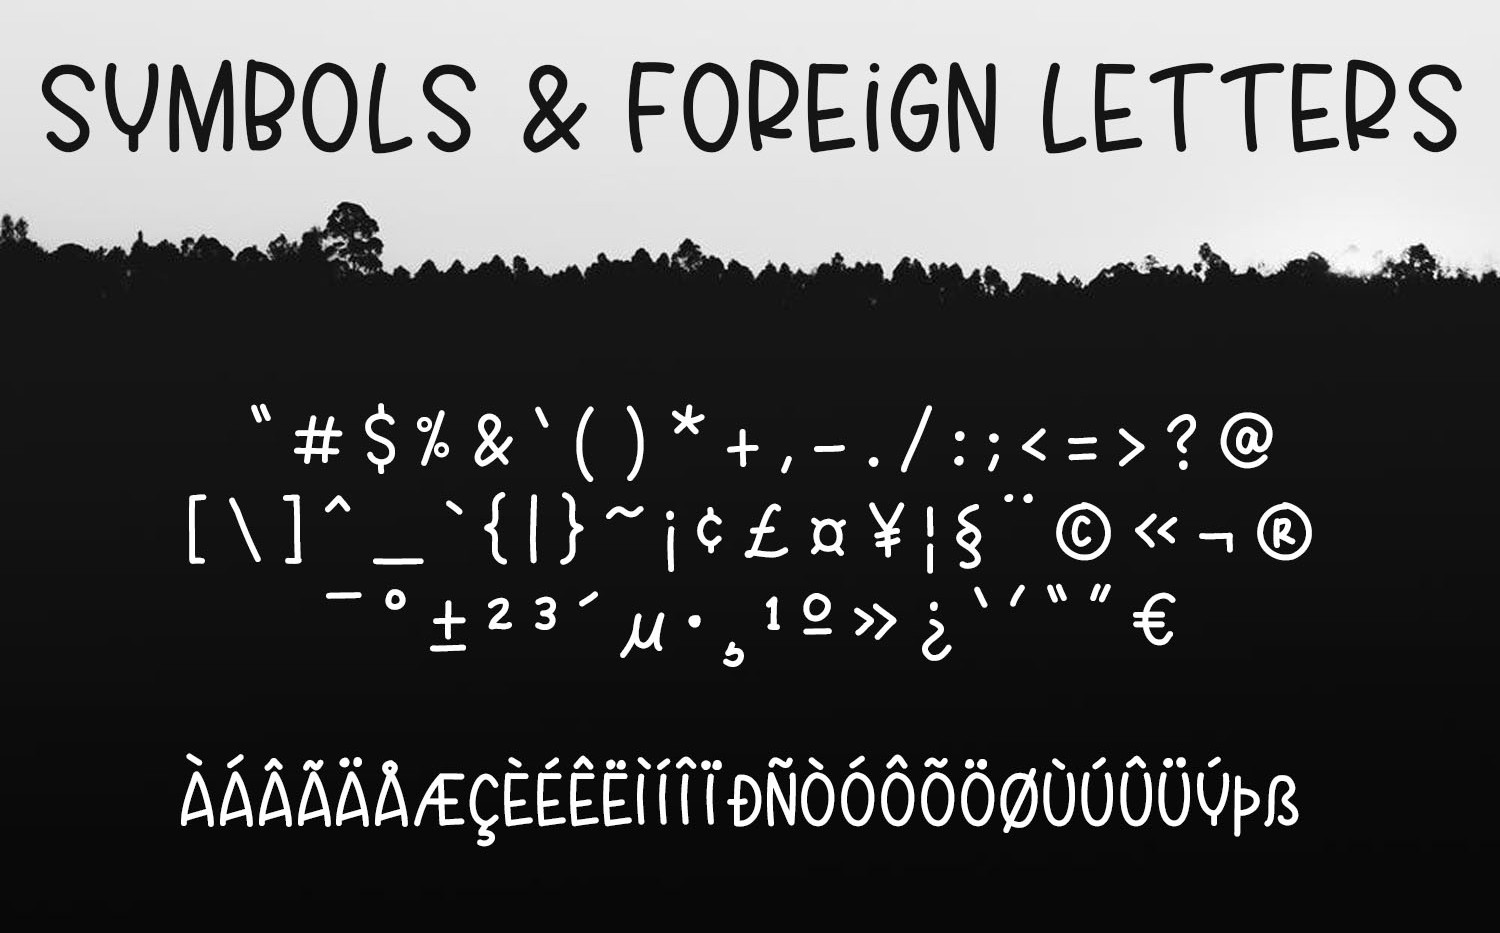 symbols and foreign letters.jpg